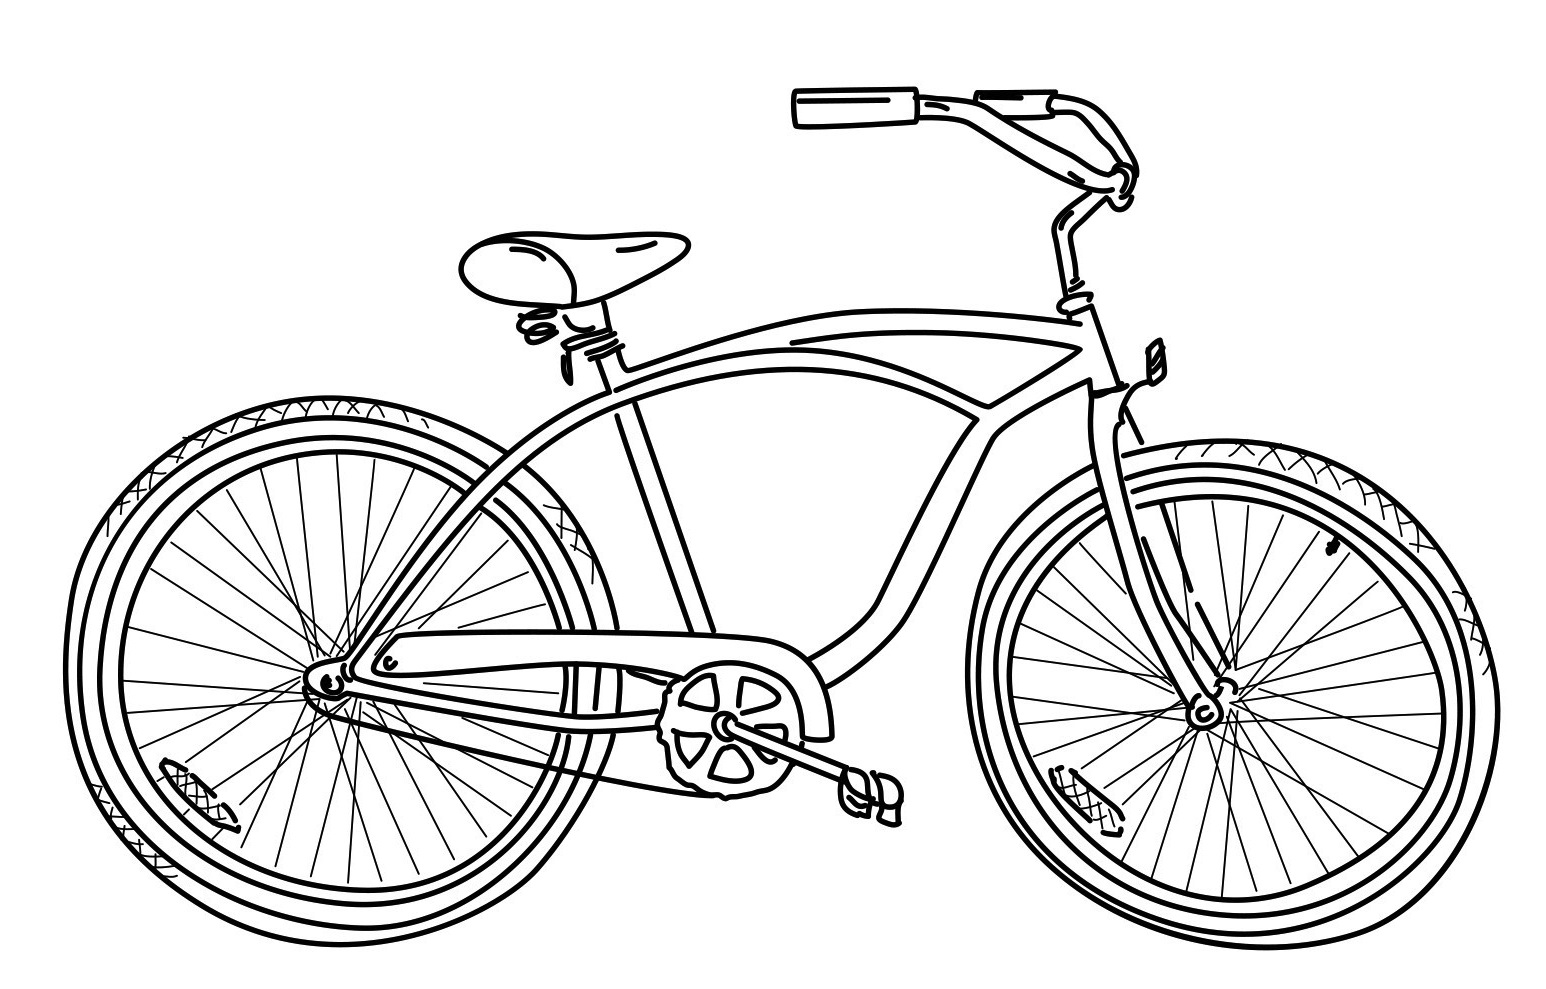 1546x989 Who Pays For My Child's Medical Bills When There Is Bicycle